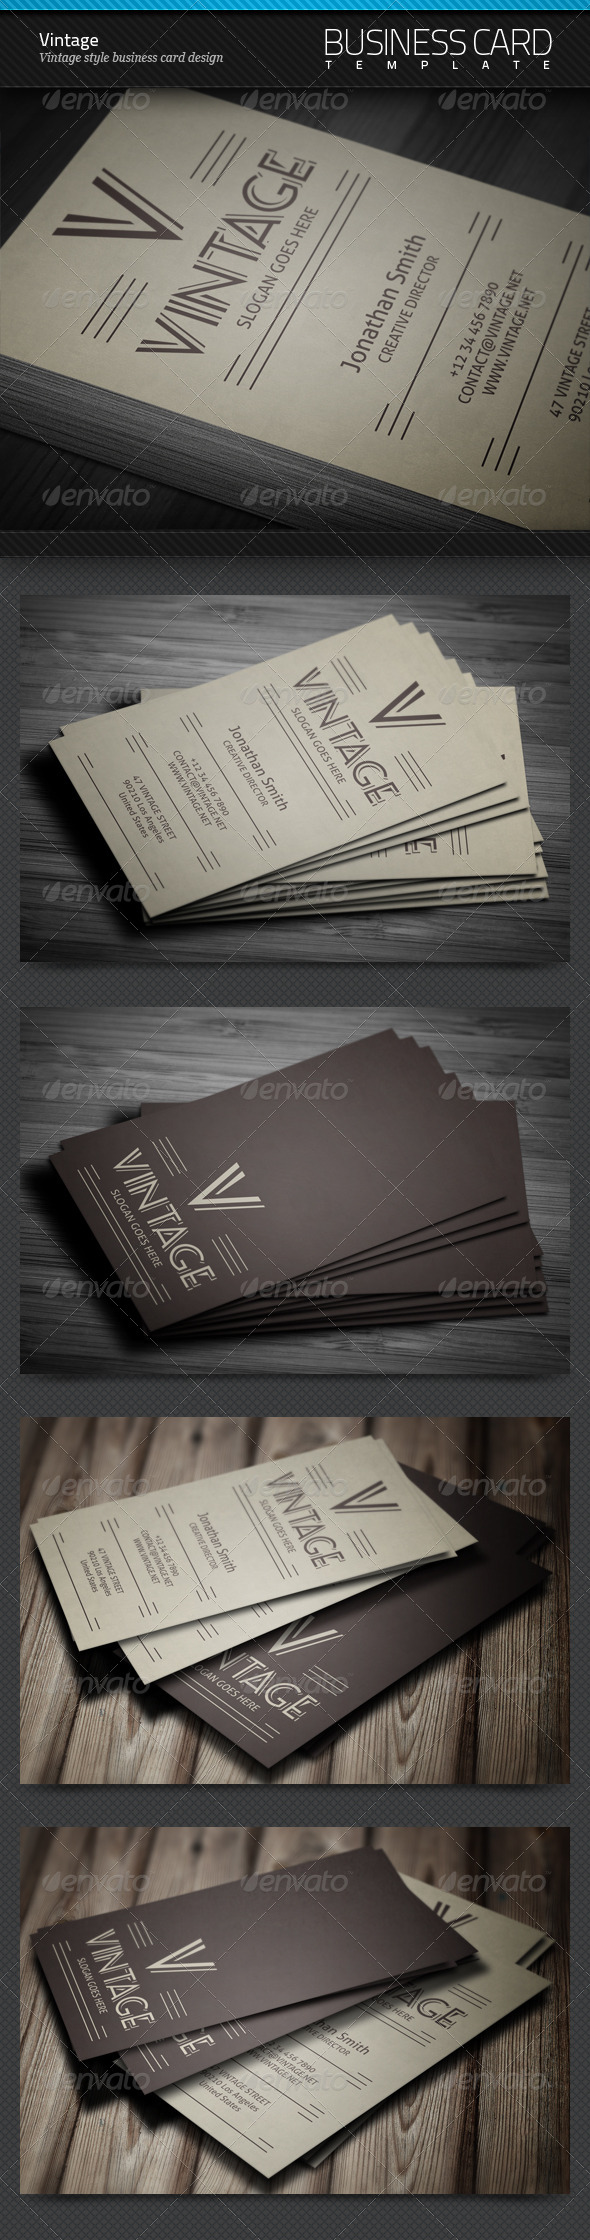 GraphicRiver Vintage Business Card 4303731